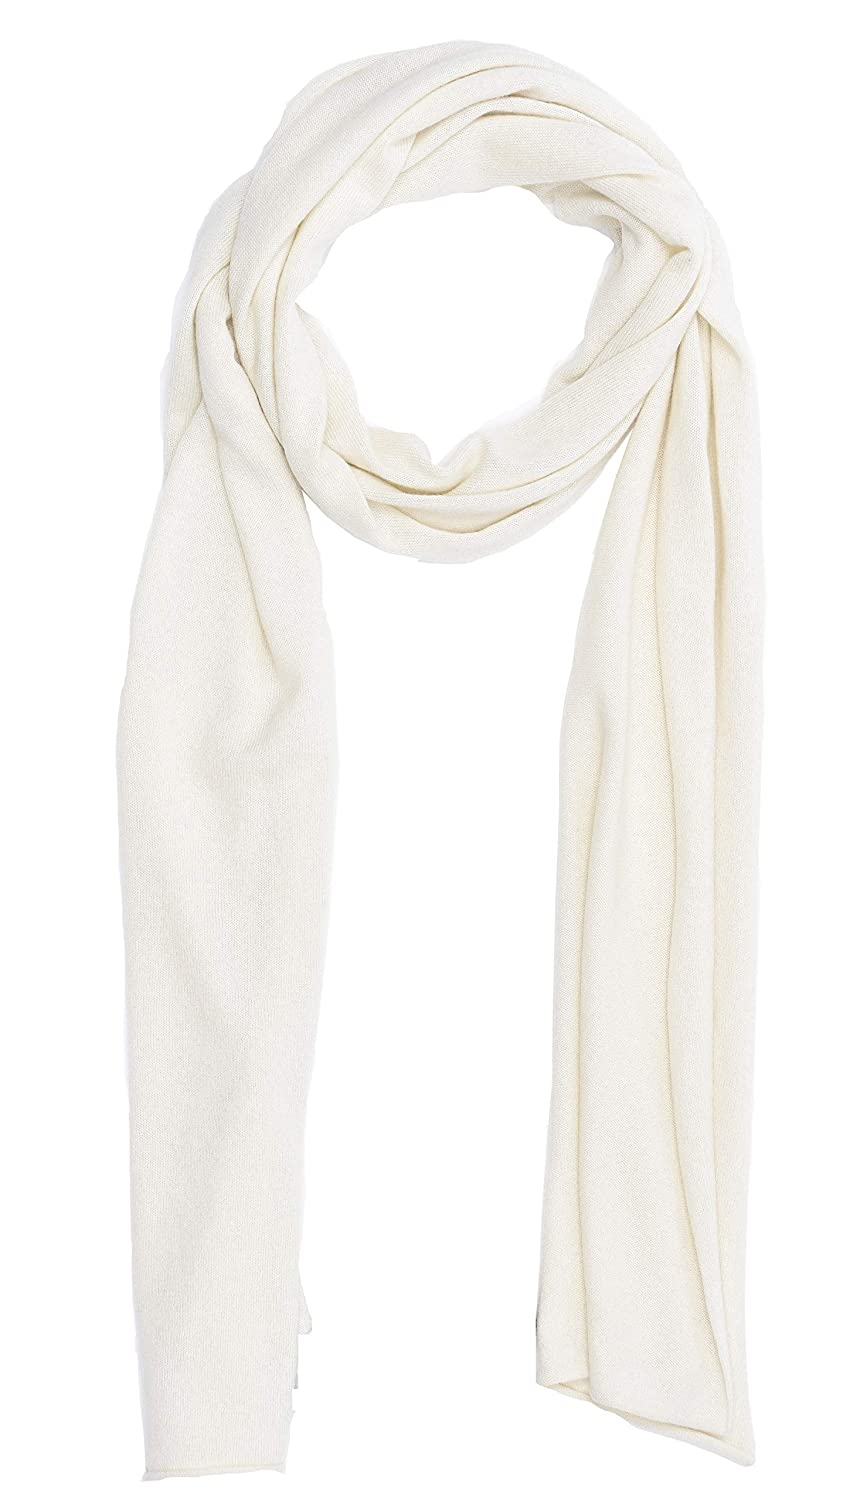 Ivory State Cashmere 100% Cashmere Solid color Scarf Wrap, Soft and Cozy 80 x13.5